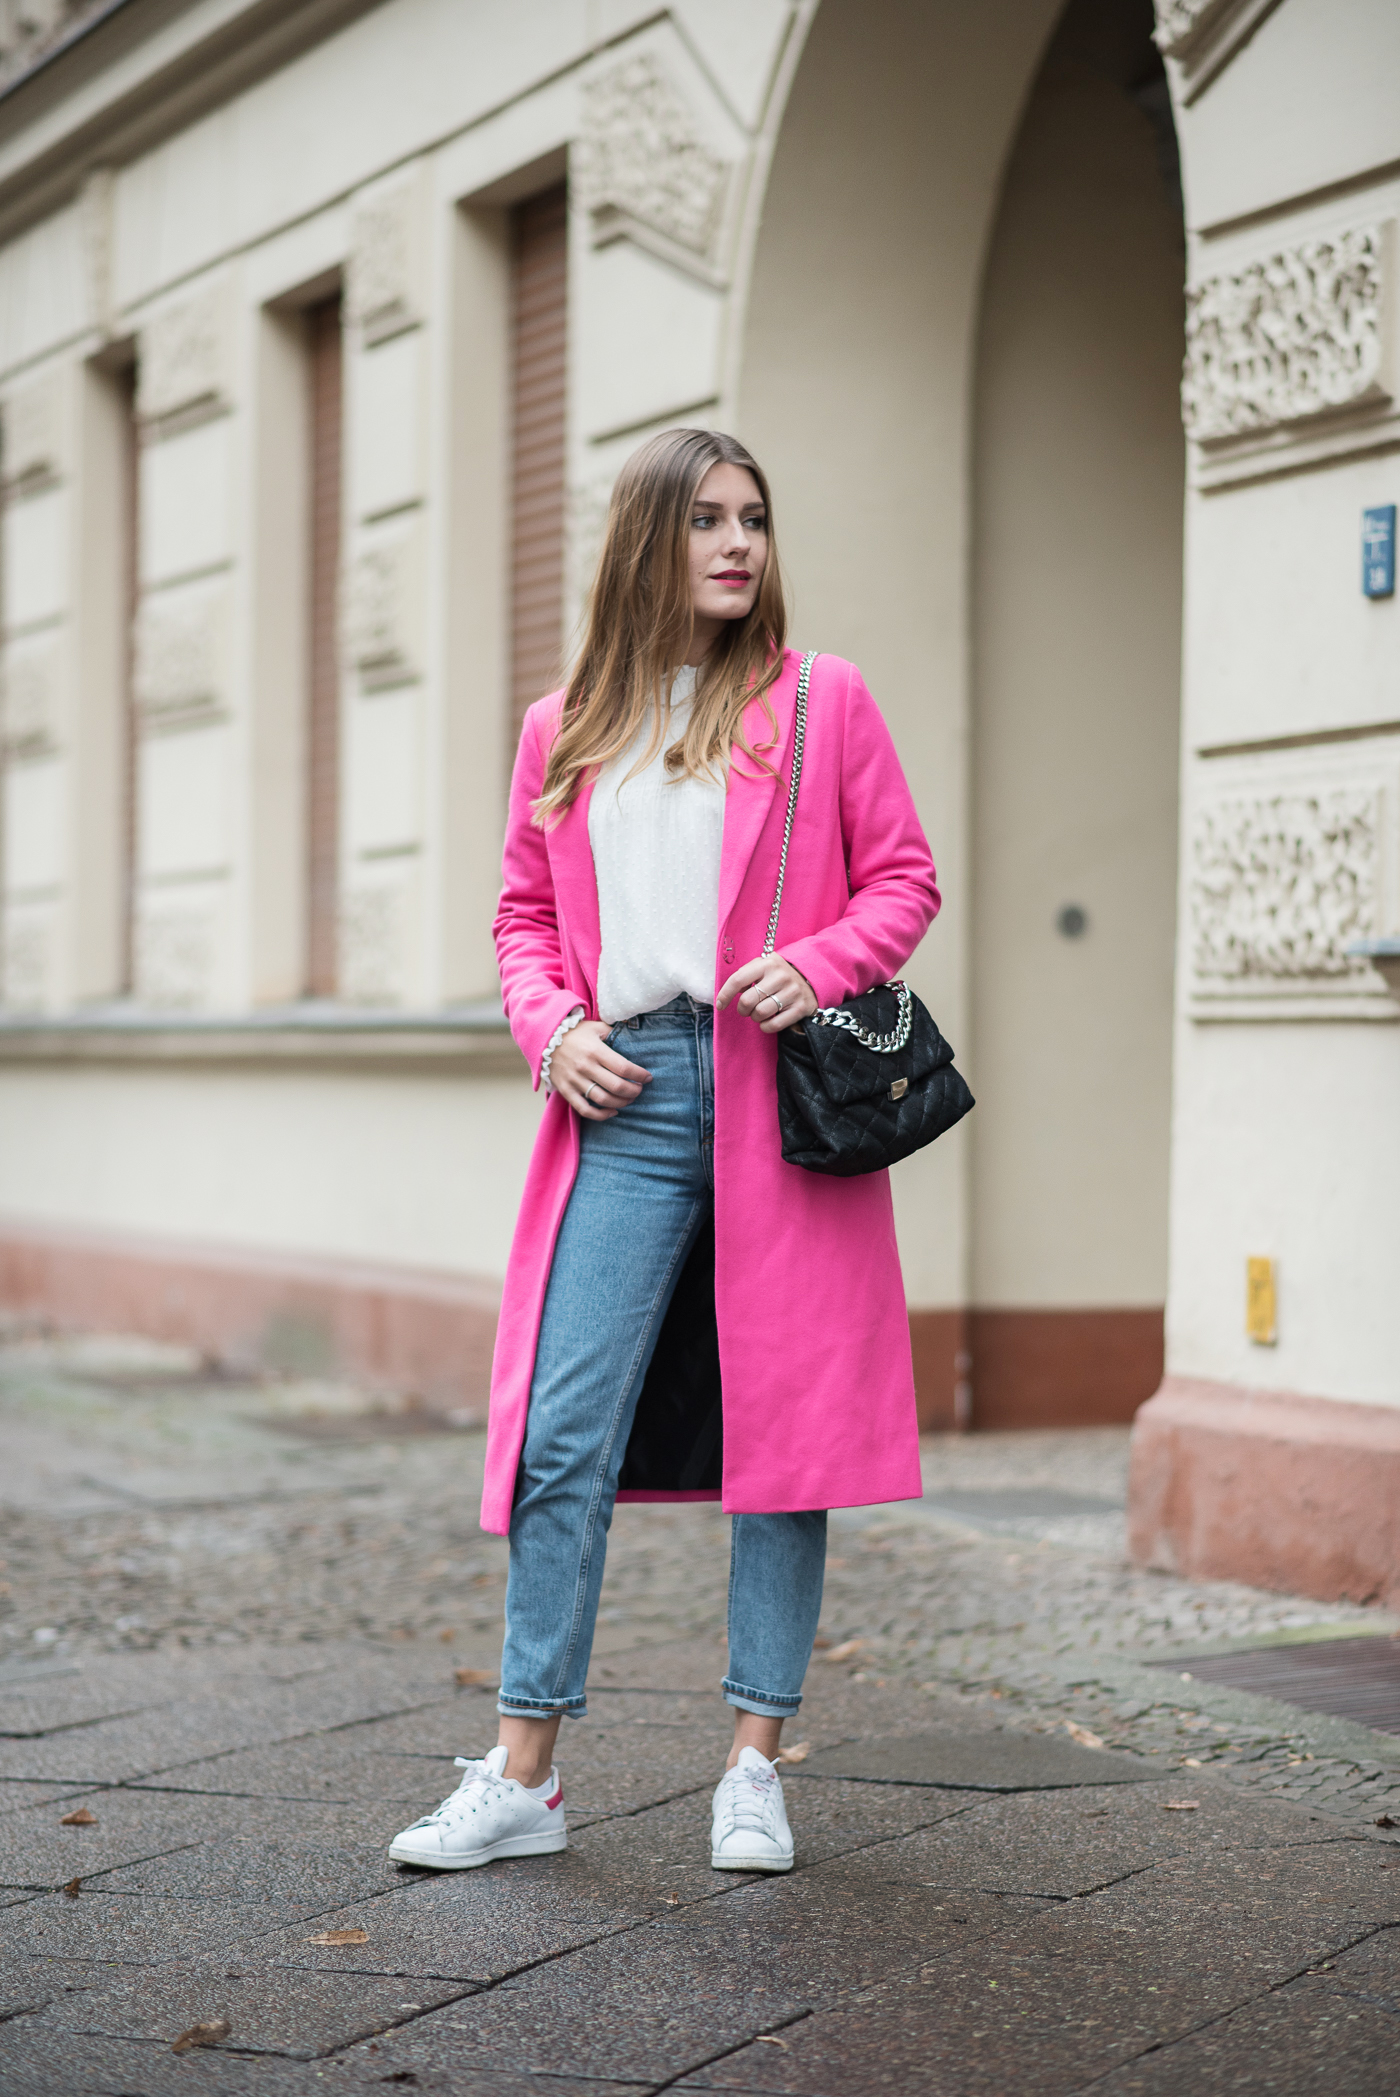 on_monday_wear_pink_topshop_coat_1